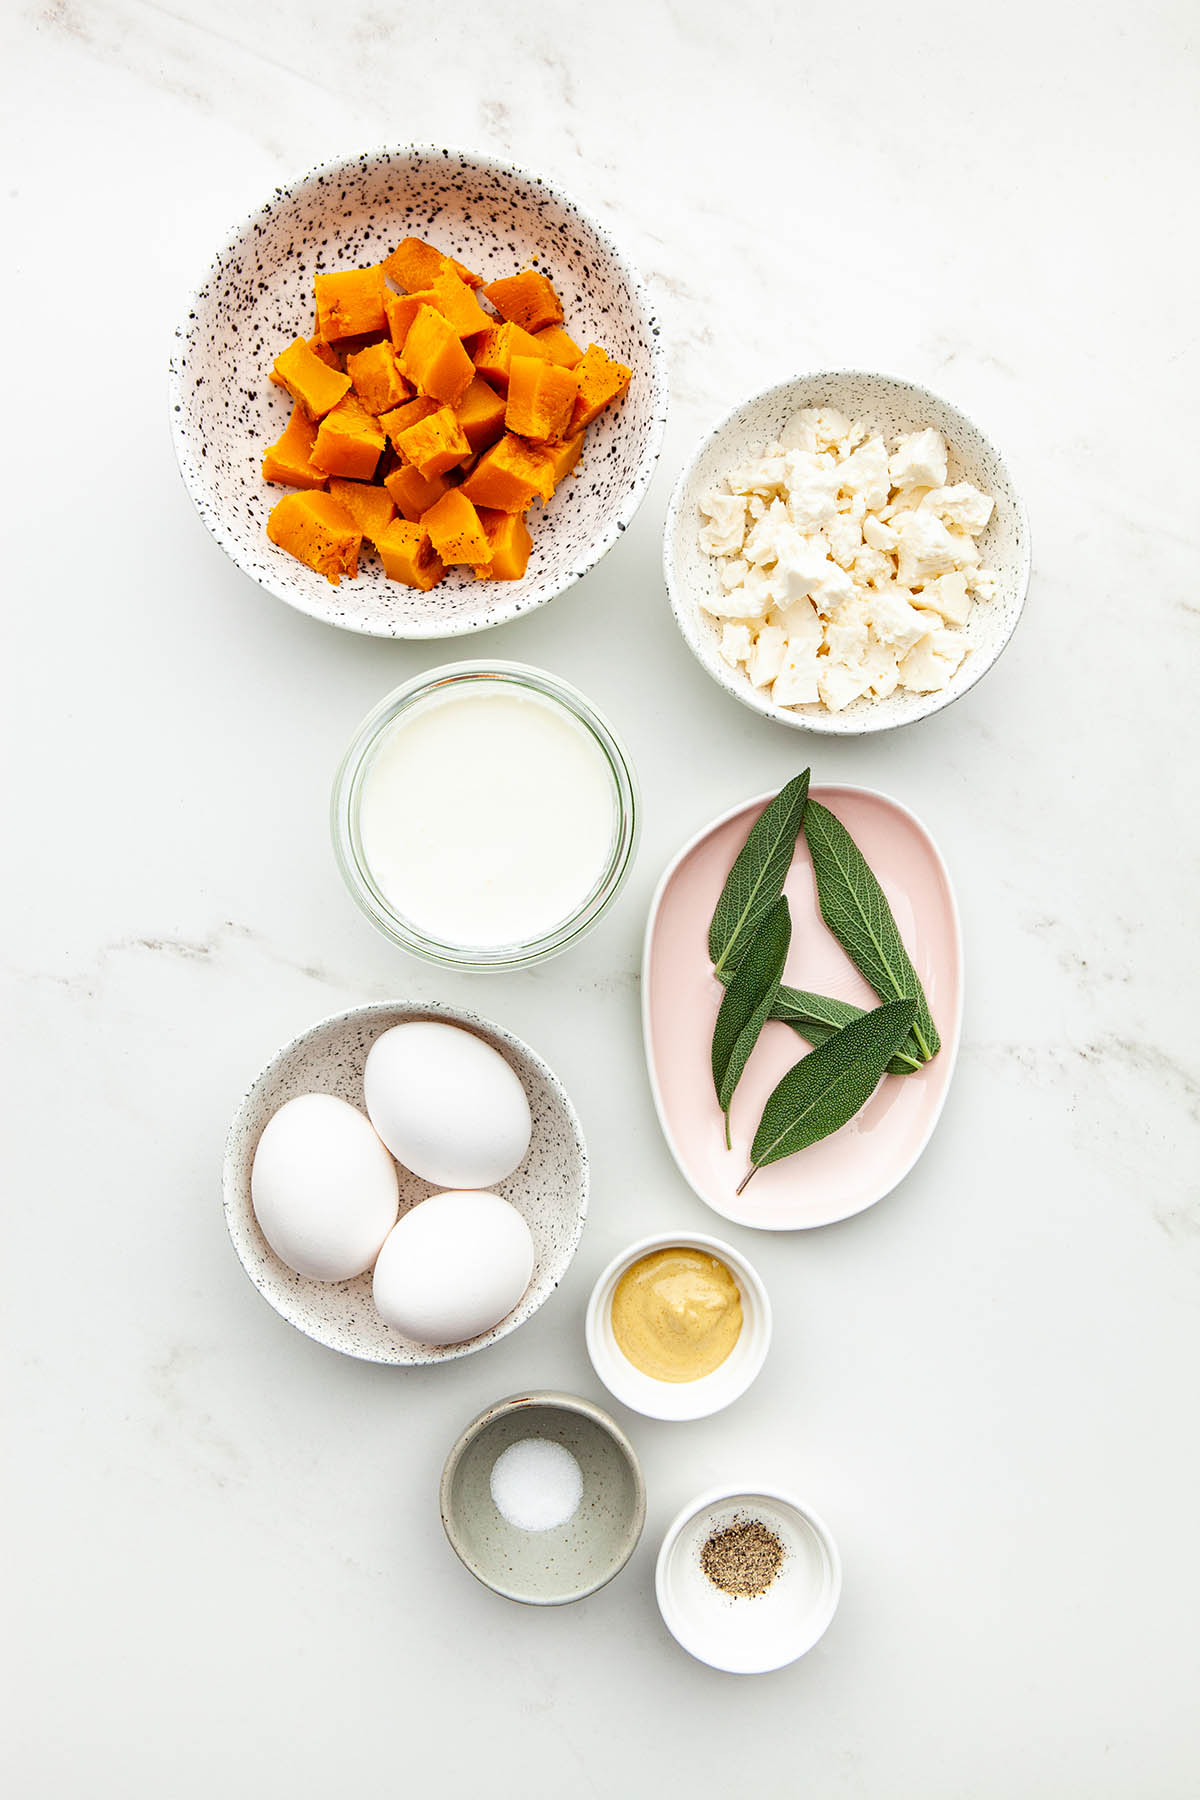 Ingredients to make pumpkin quiche.